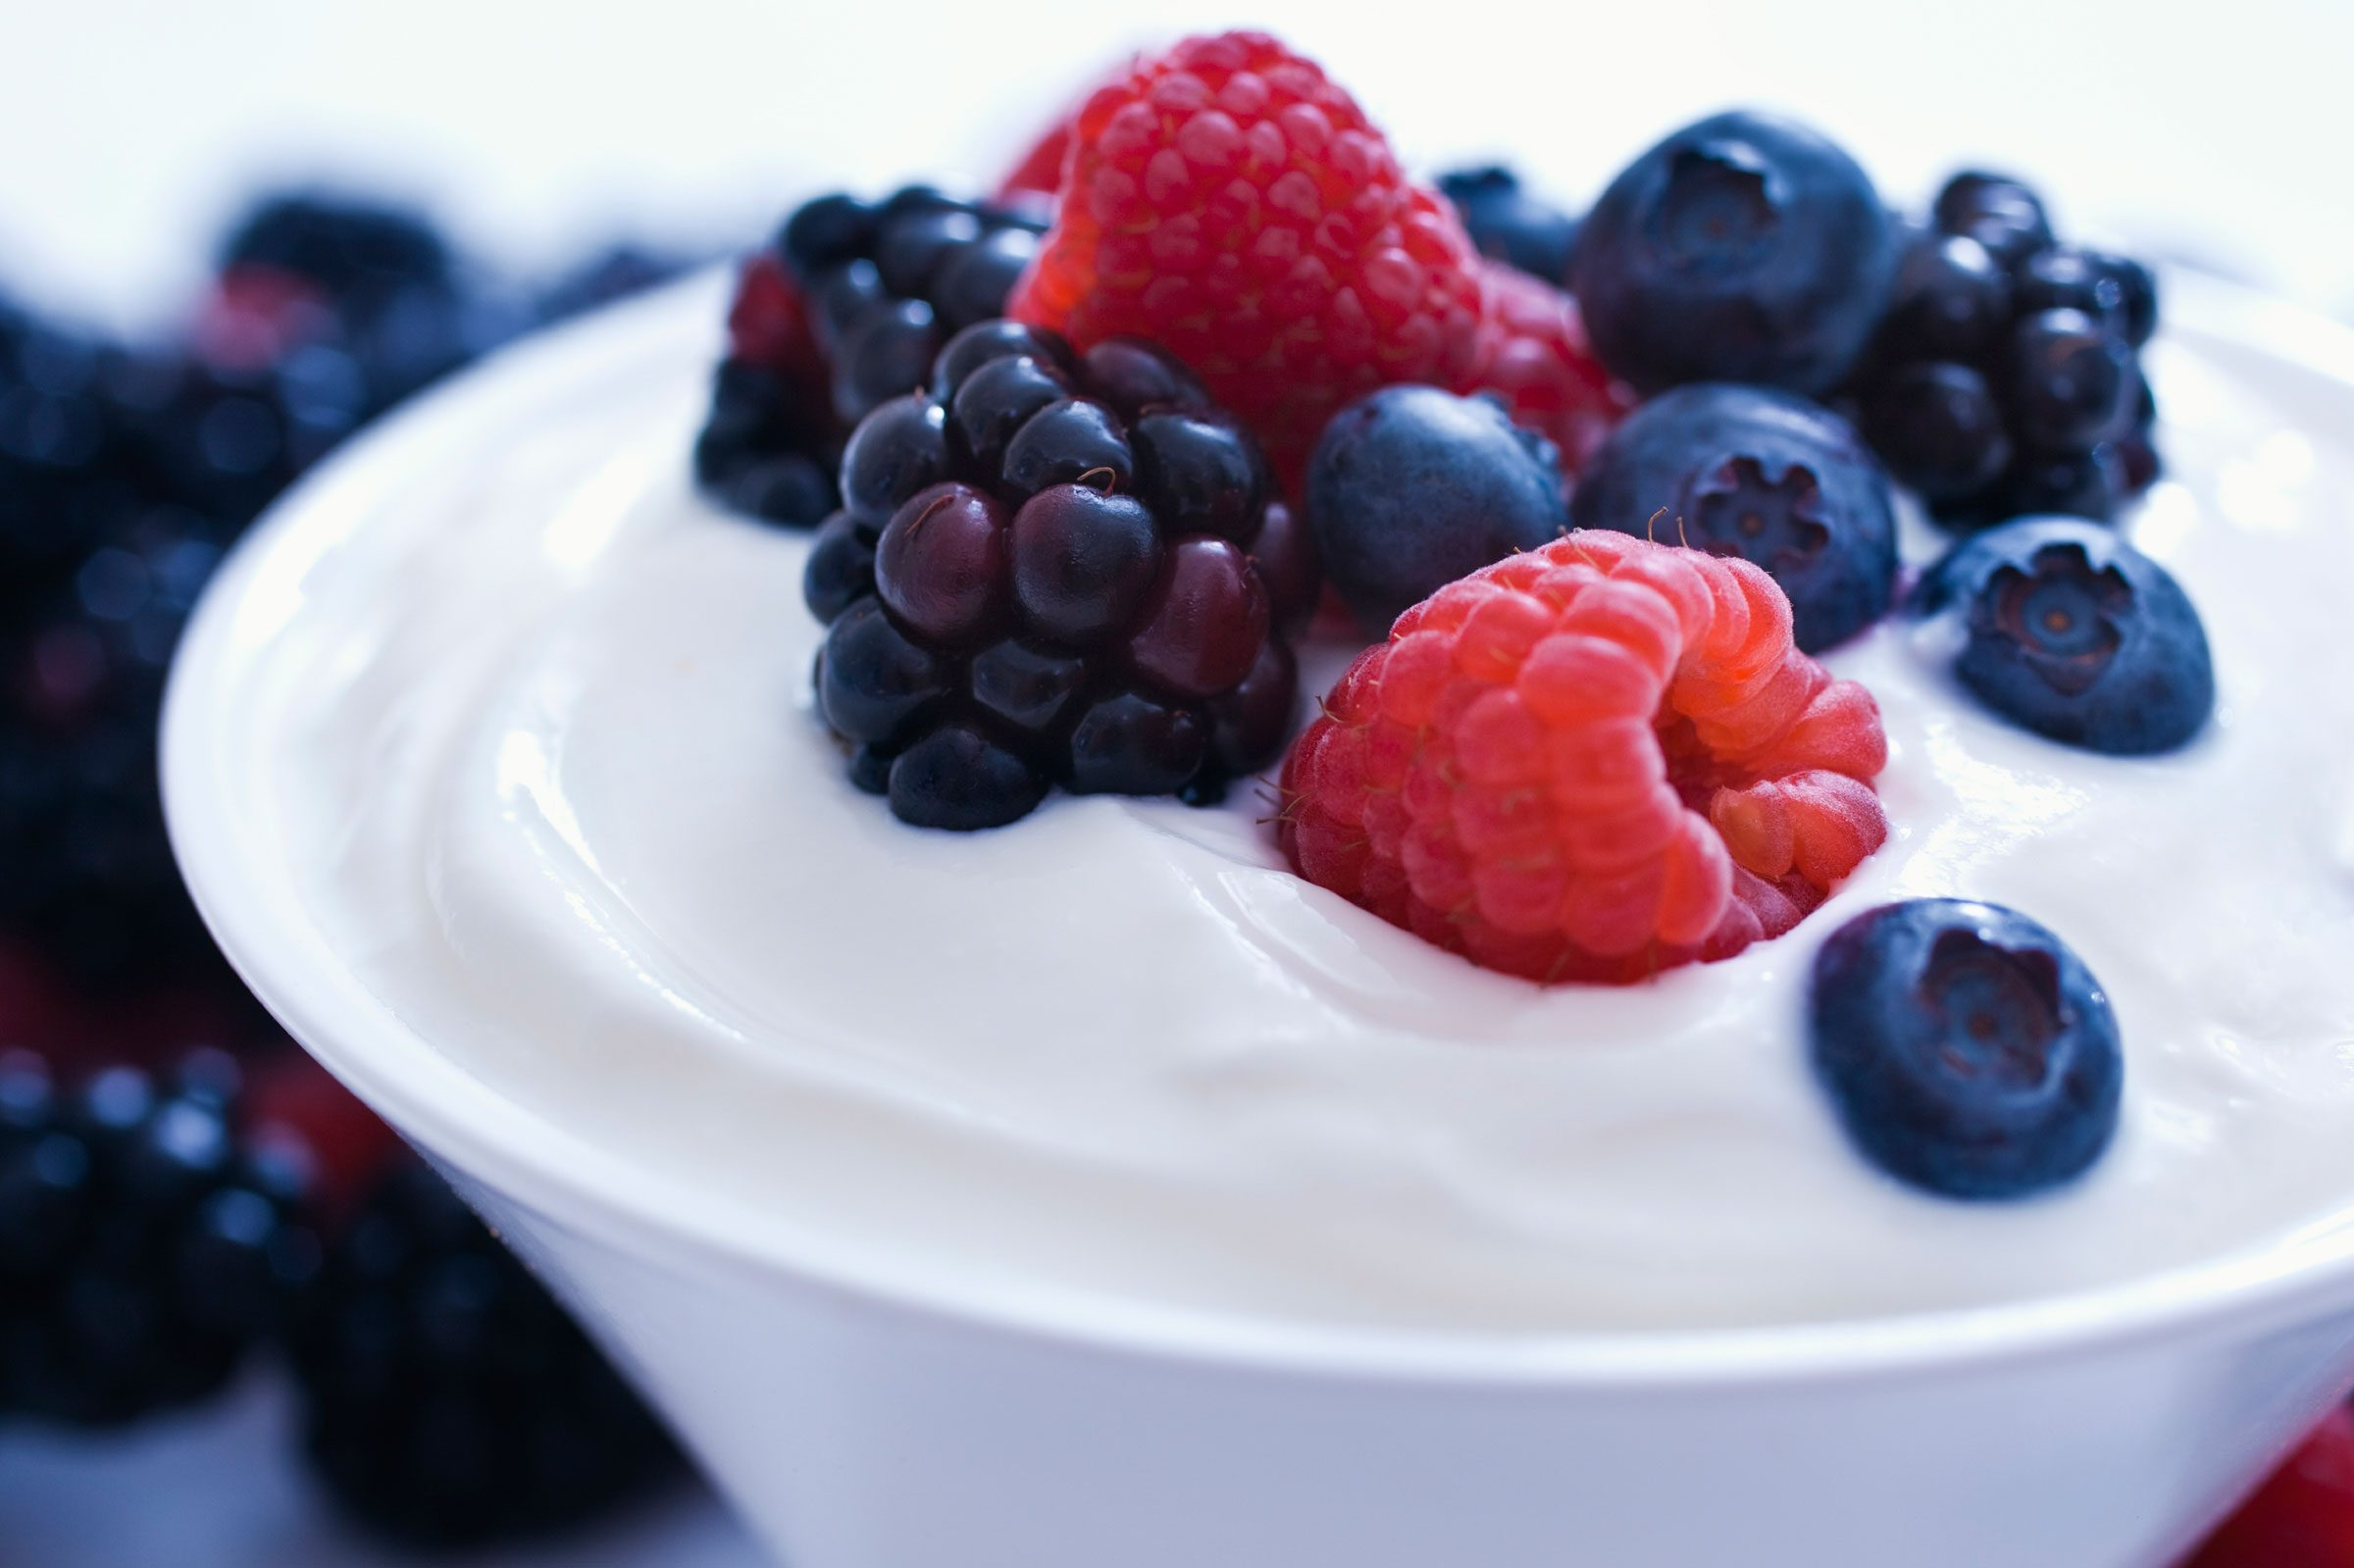 Yogurt Reduces Discomfort from an Upset Stomach